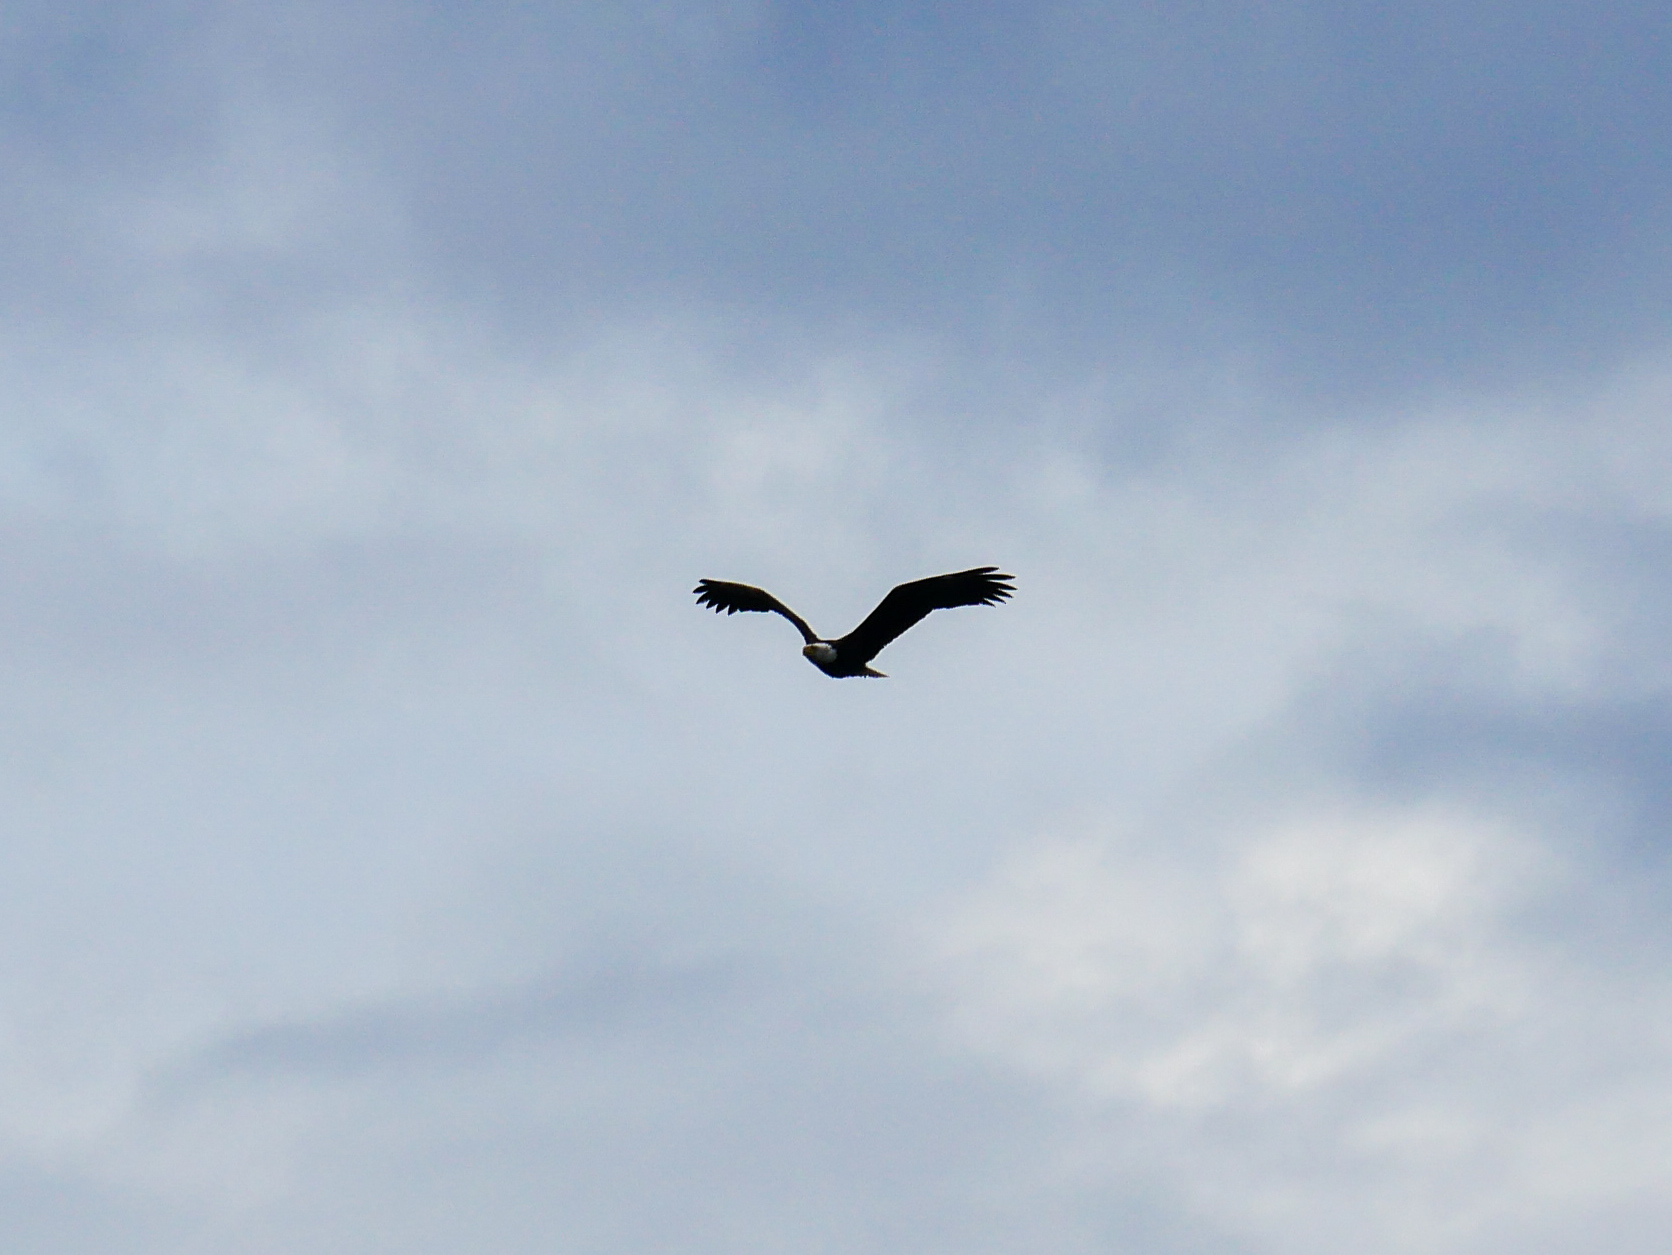 While on scene our guests got to enjoy a bald eagle flying overhead! Photo by Val Watson.